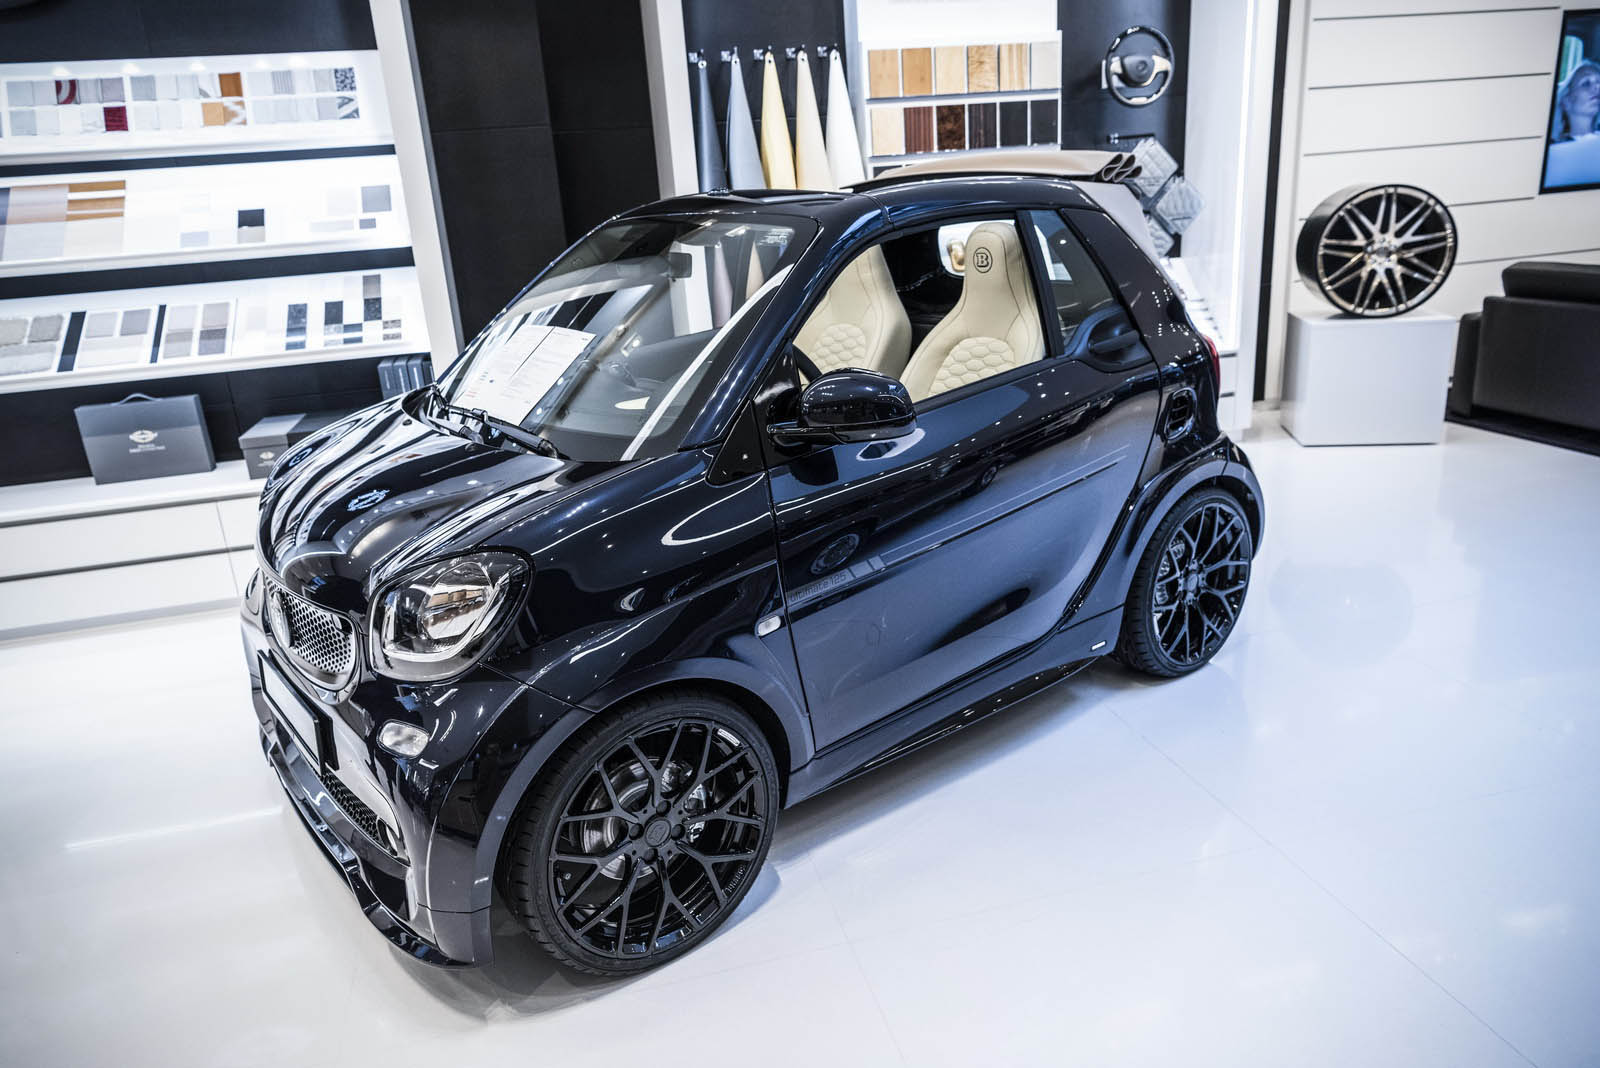 Scrap My Car London >> Visiting Germany? Check Out Brabus' New Flagship Showroom In Düsseldorf   Carscoops